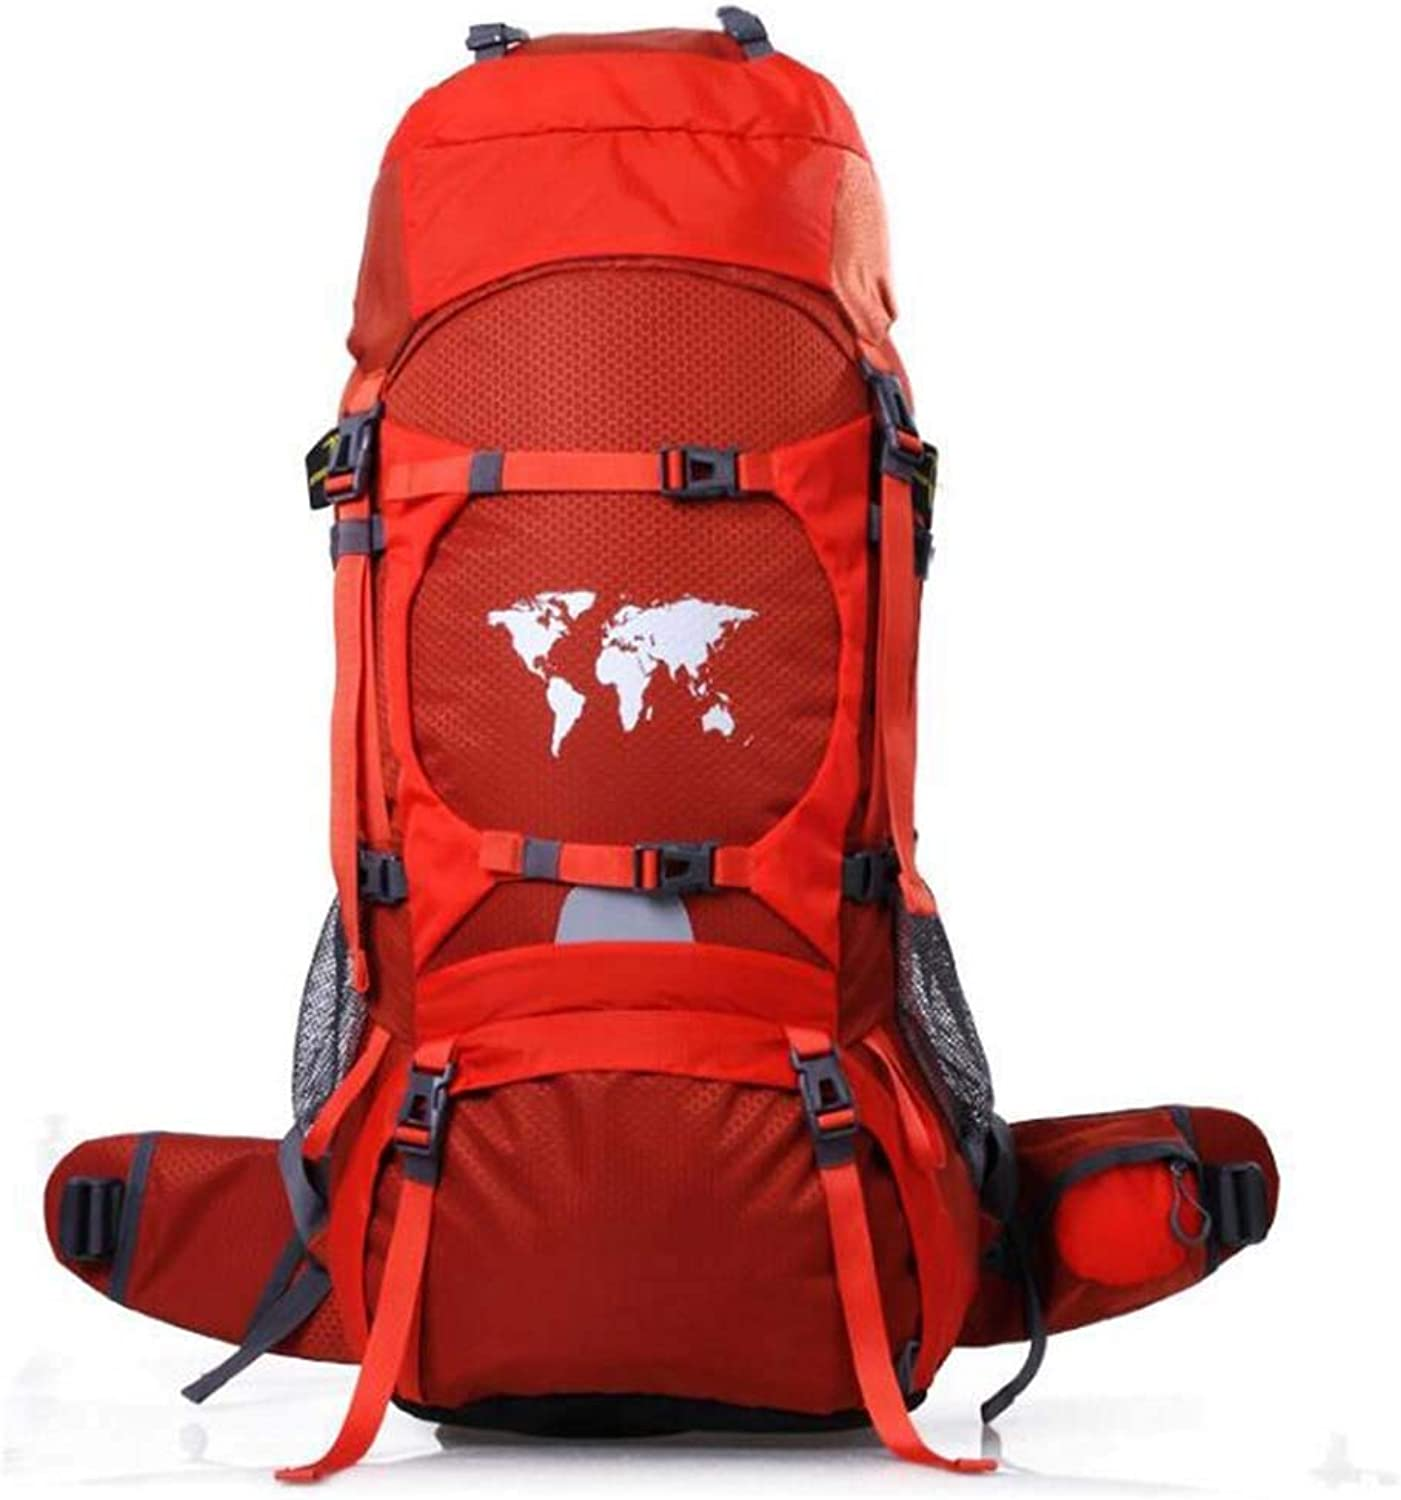 Large Hiking Backpack Camping Large Capacity Mountaineering Bag 70 Liters Leisure Sports Outdoor Travel Climbing Camping Backpack Strong Wearable Multi-Function Outdoor Backpack Multi-color Optional